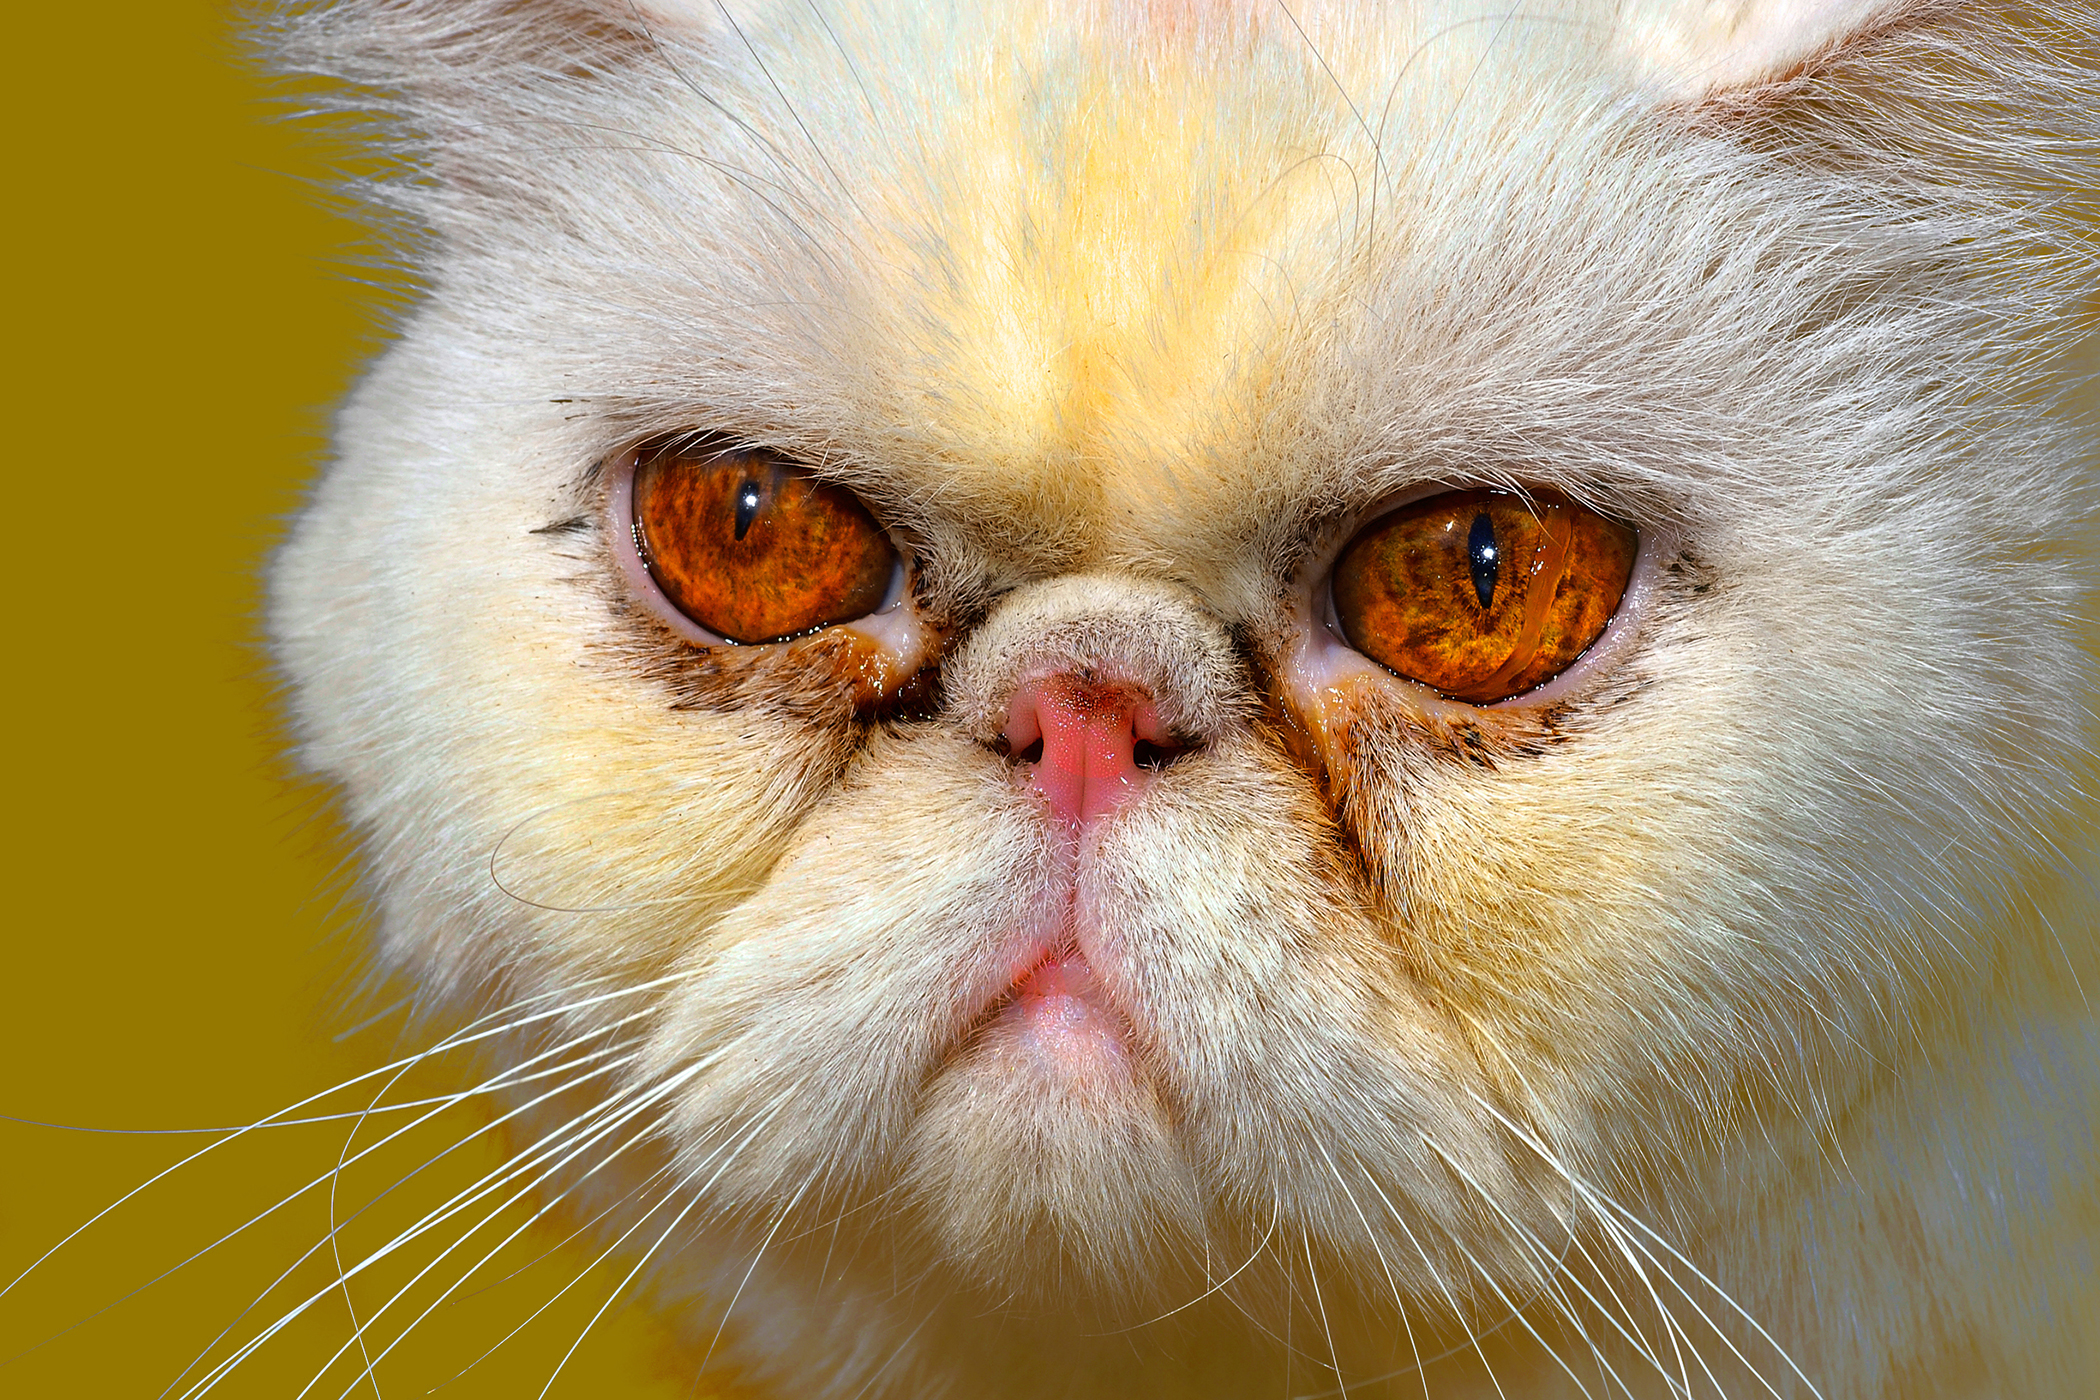 Yellow Fat Disease in Cats